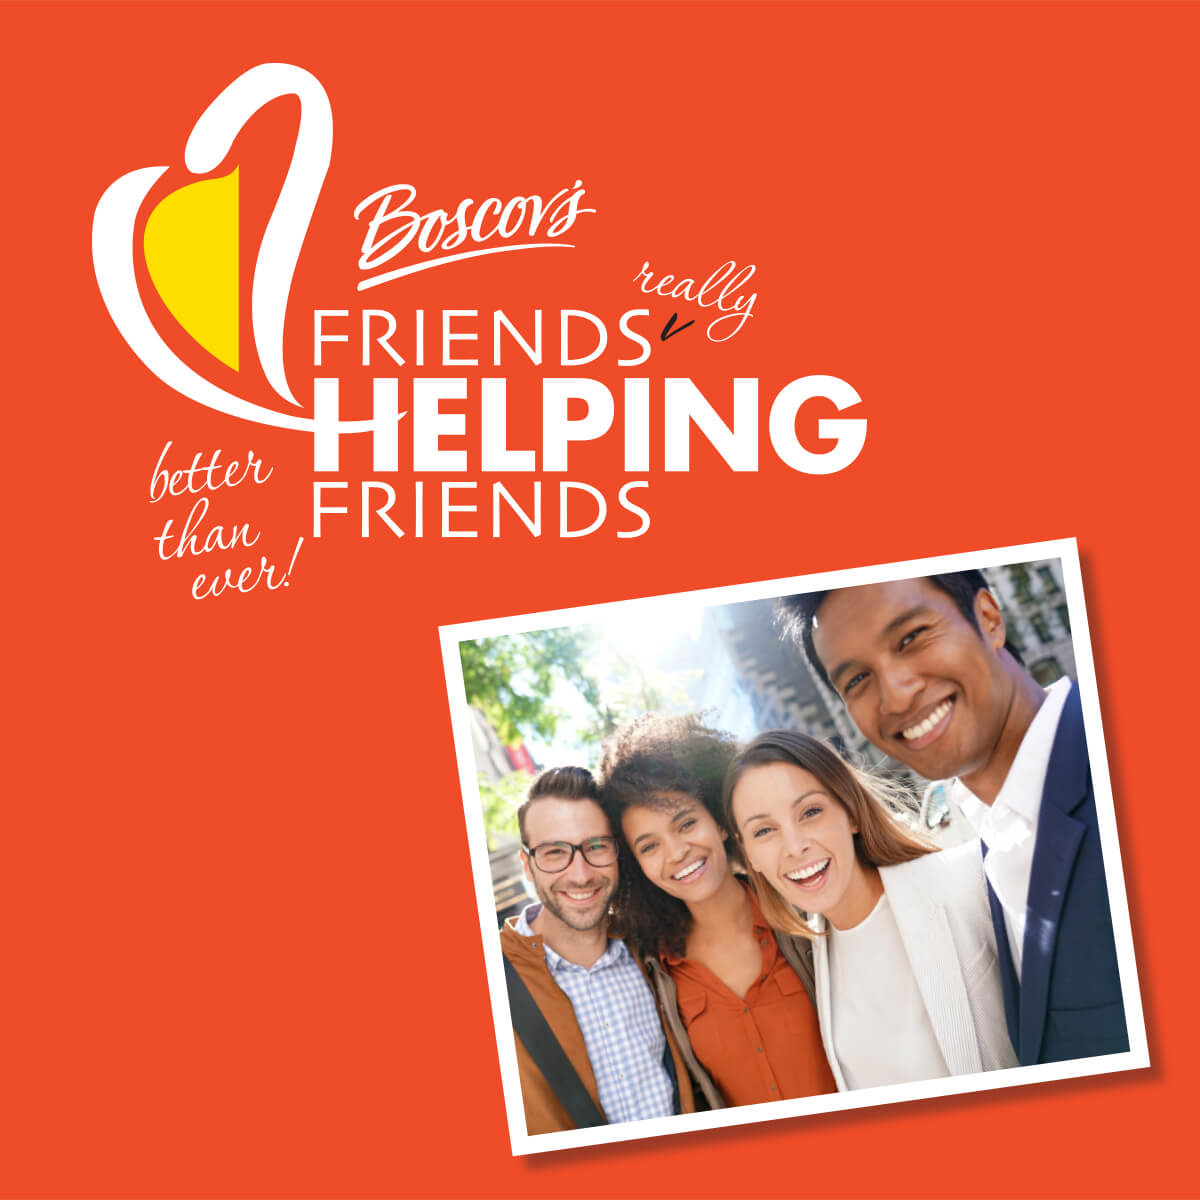 Friends Helping Friends orange poster with a photo of a group of friends